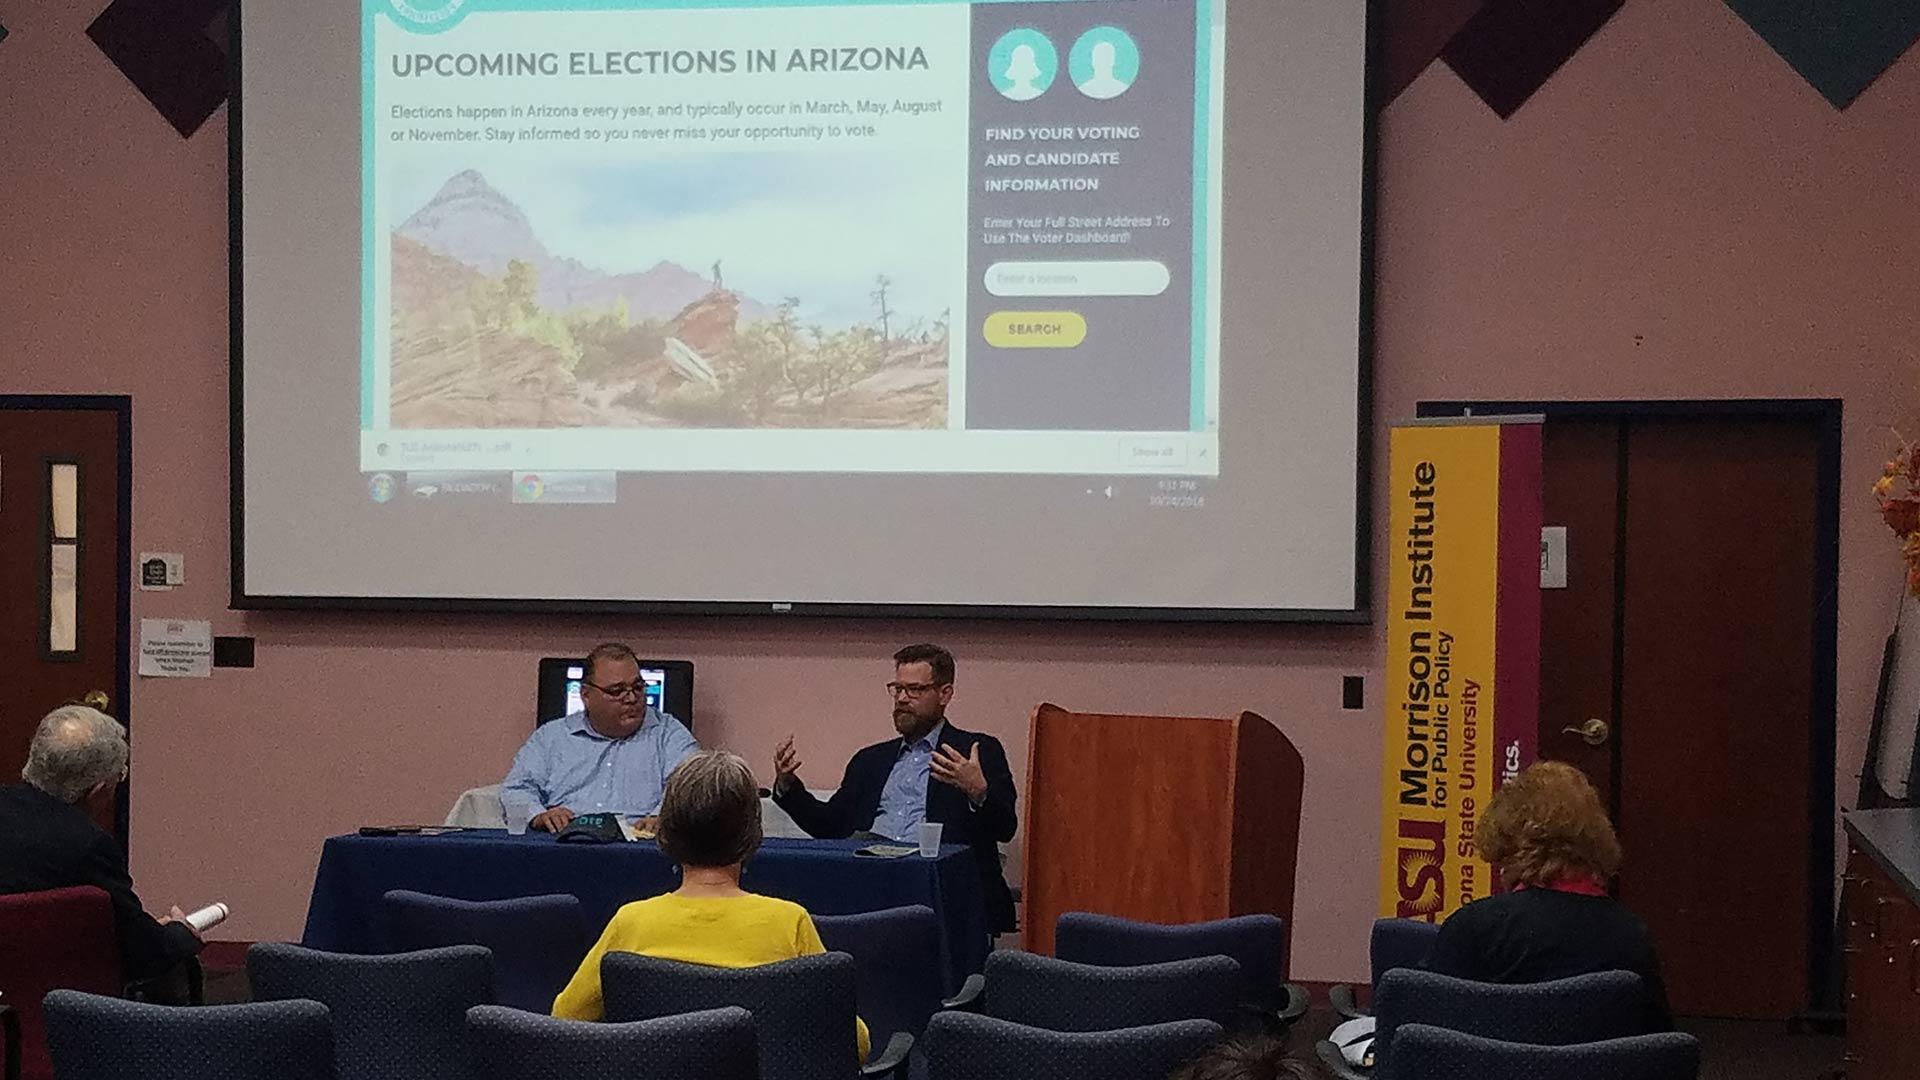 Joseph Garcia of the Morrison Institute, left, and Tom Collins, executive director of the Arizona Citizens Clean Elections Commission